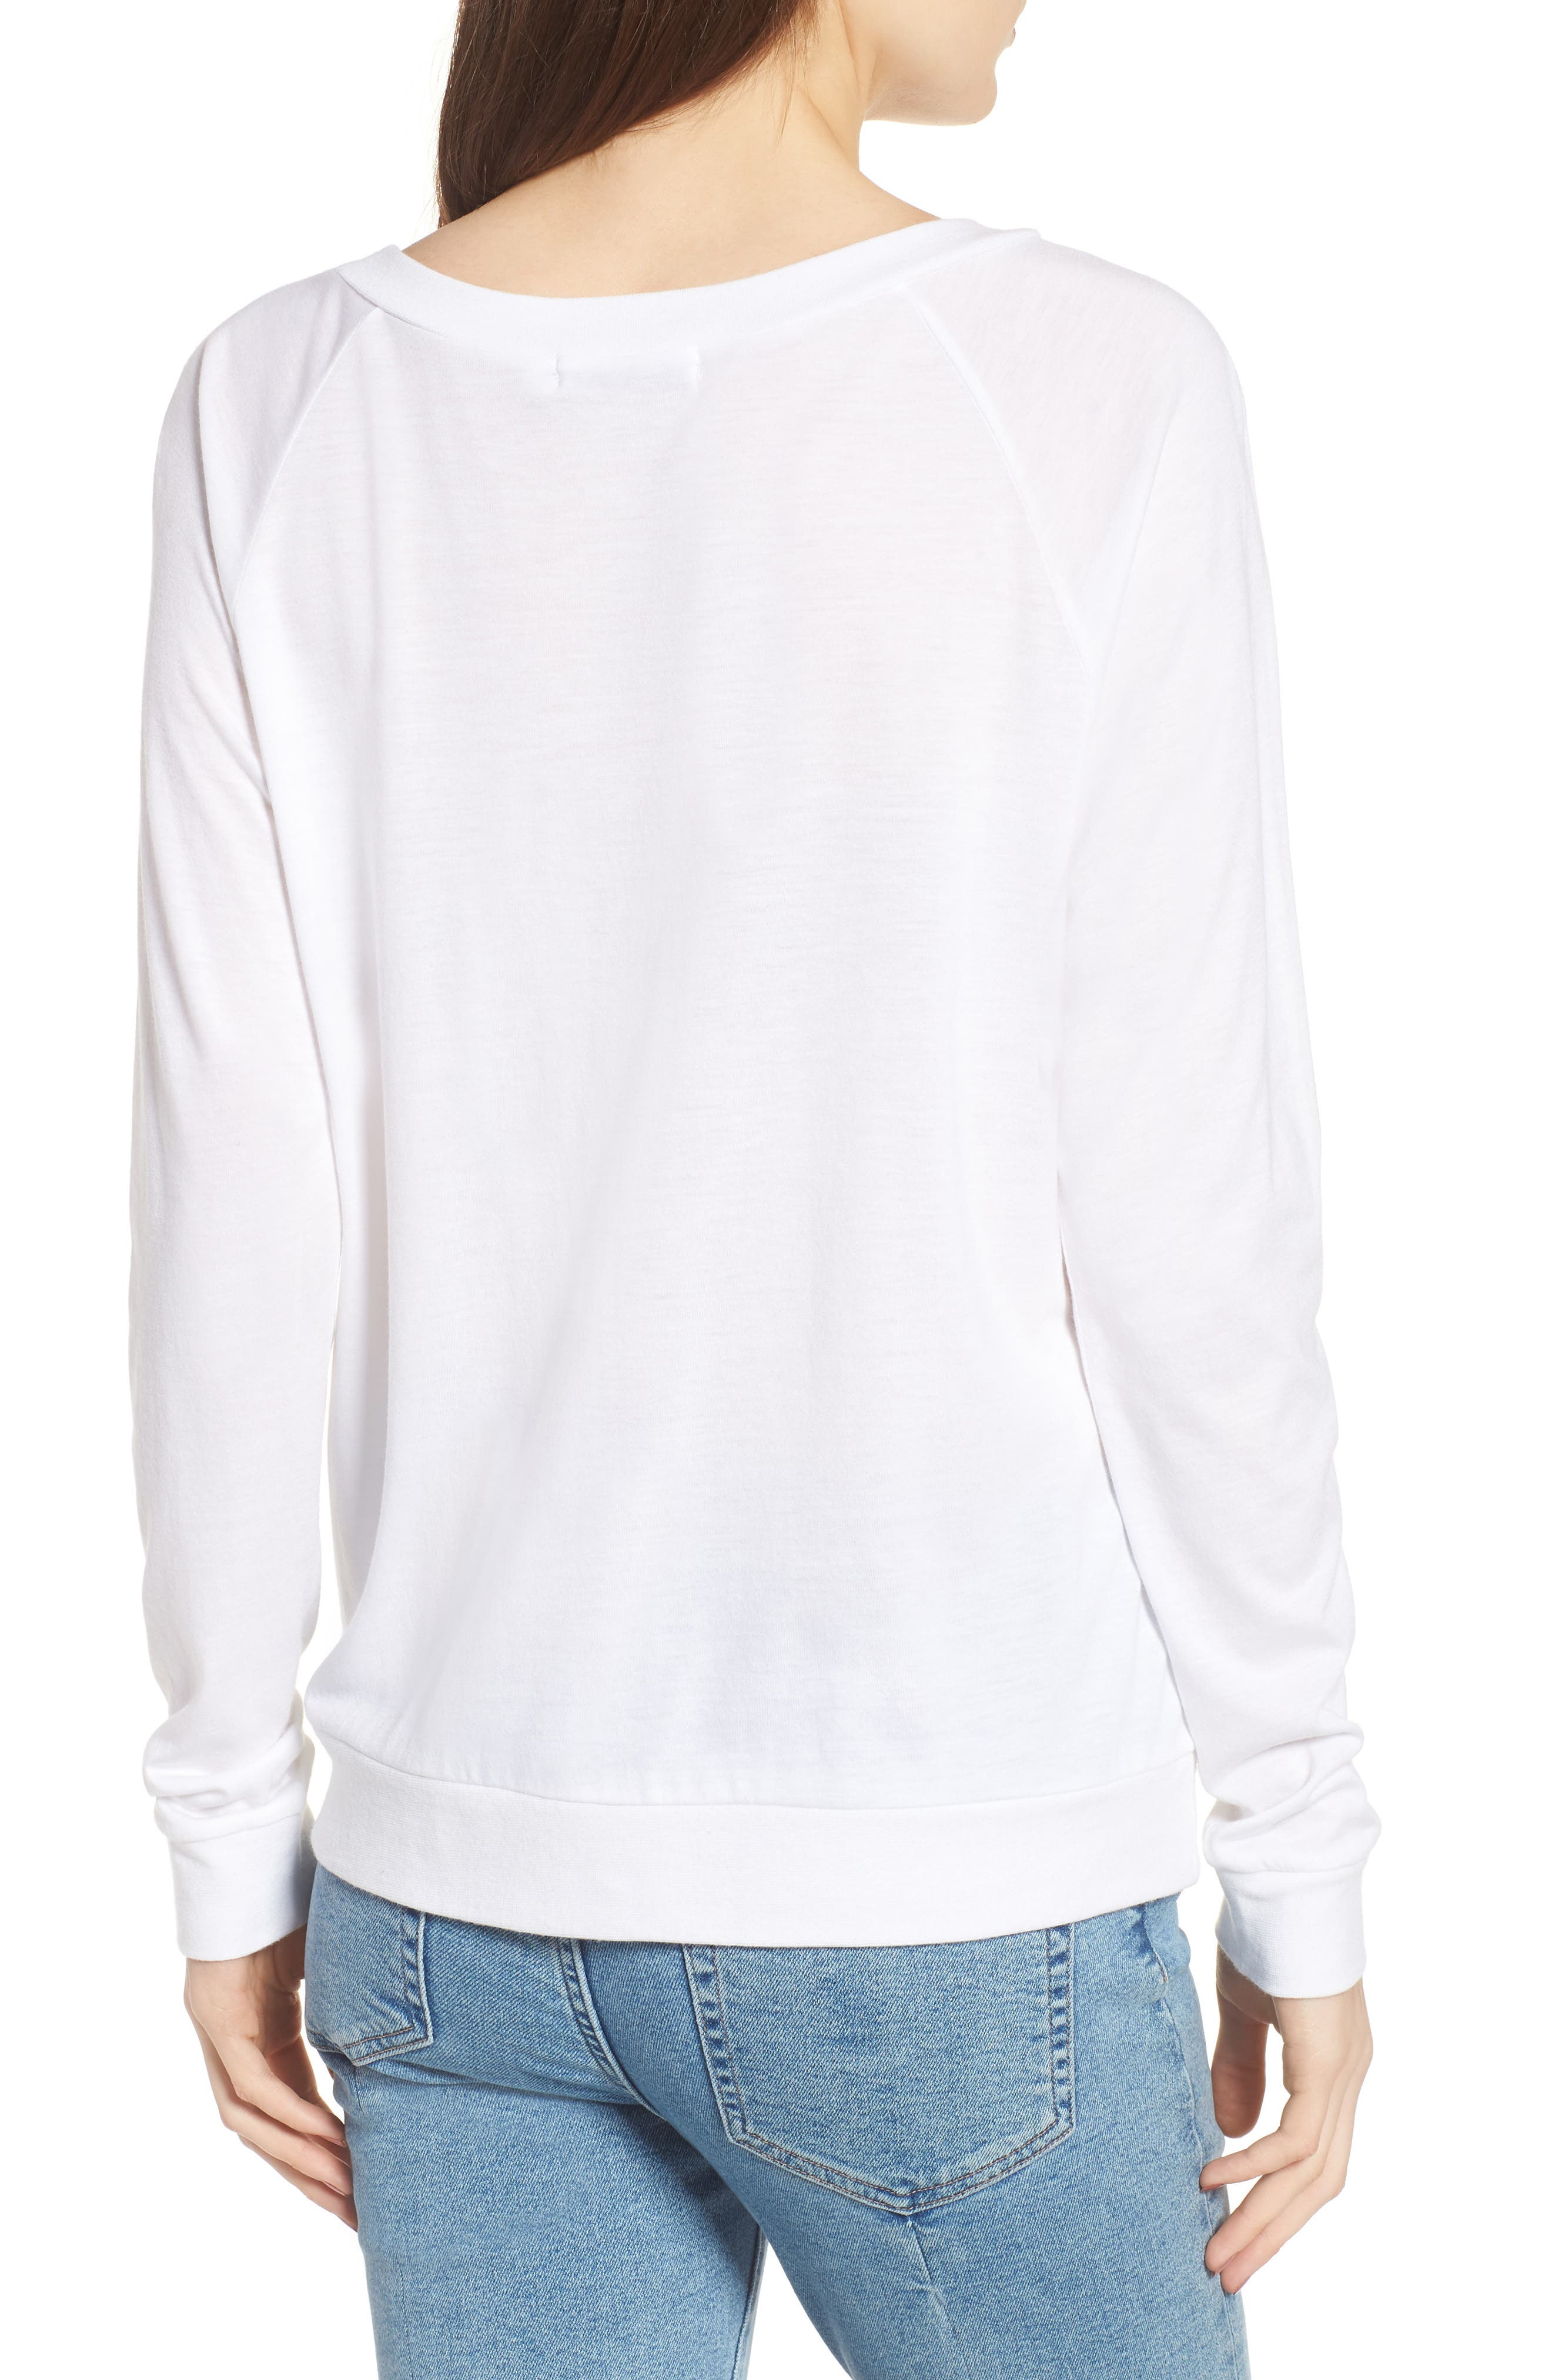 Candy - Smile Smile Pullover,                             Alternate thumbnail 2, color,                             White